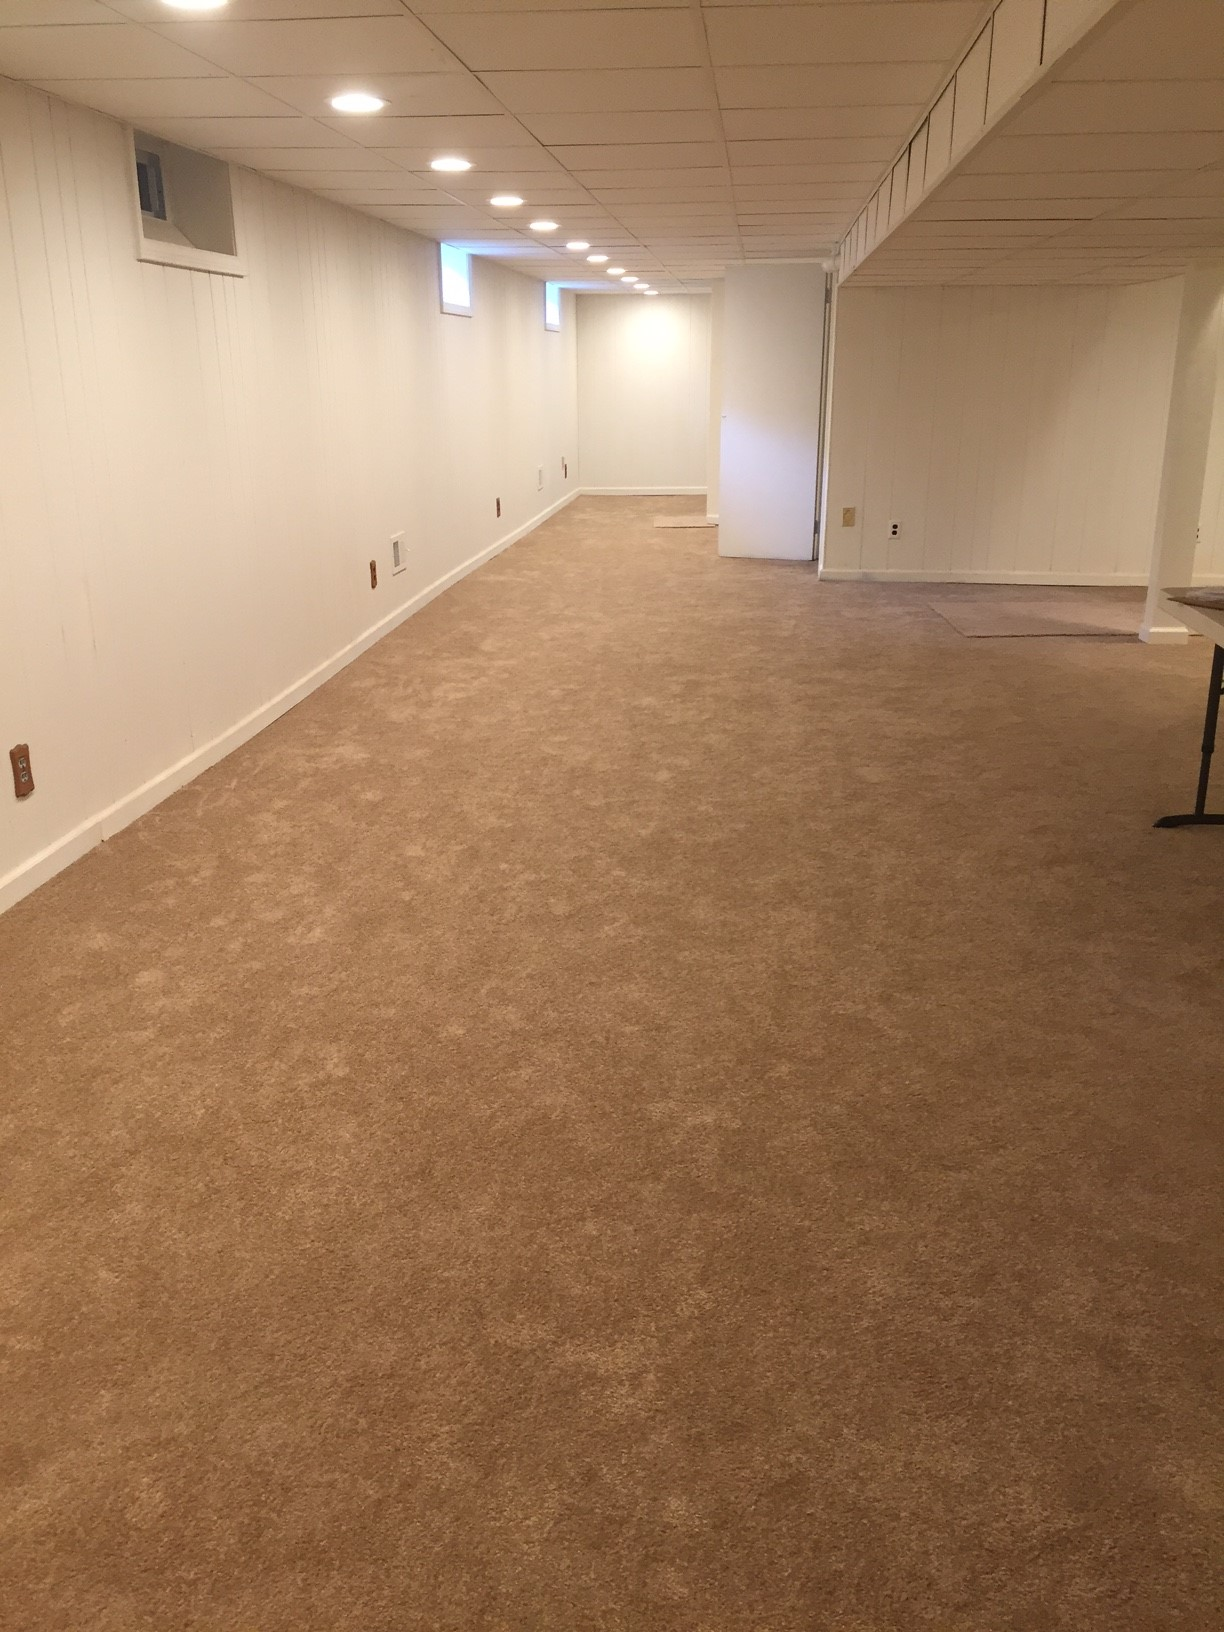 Basement Refinished2.jpg